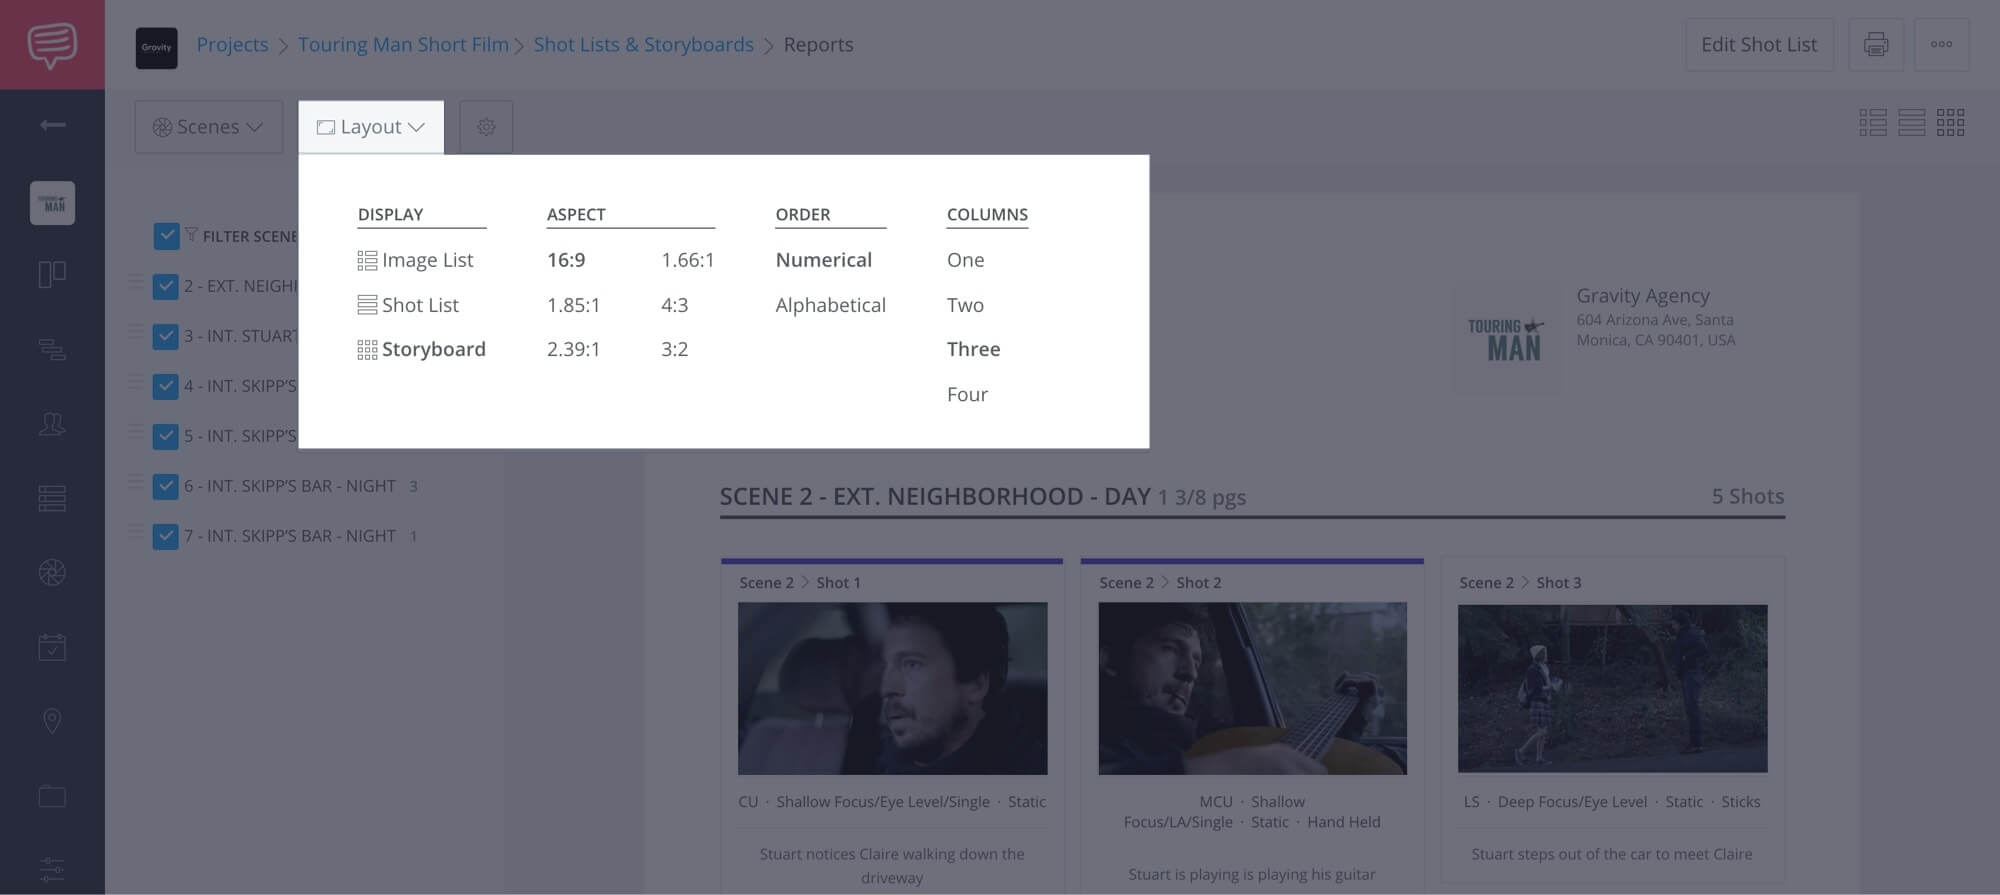 How to Create a Shot List with StudioBinder - Shot List Creator Template - 23